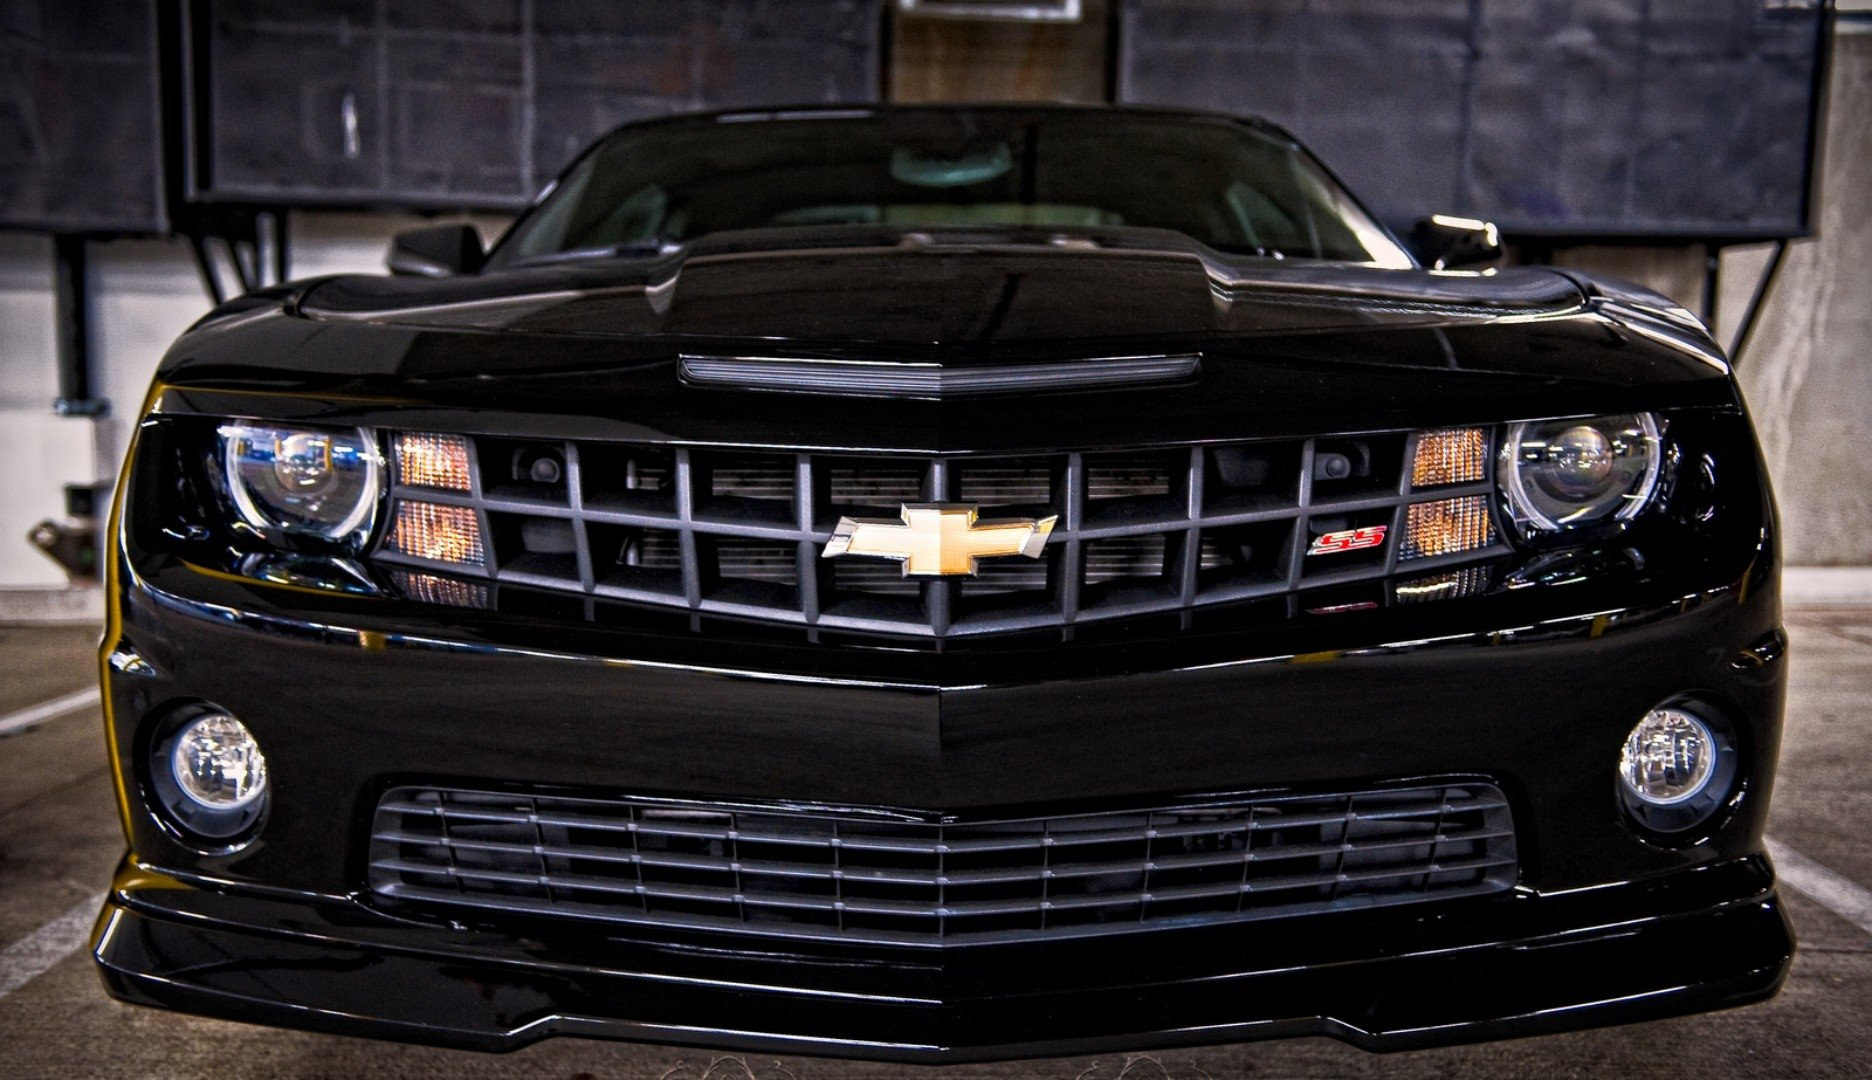 chevrolet wallpaper and background image | 1872x1080 | id:79869